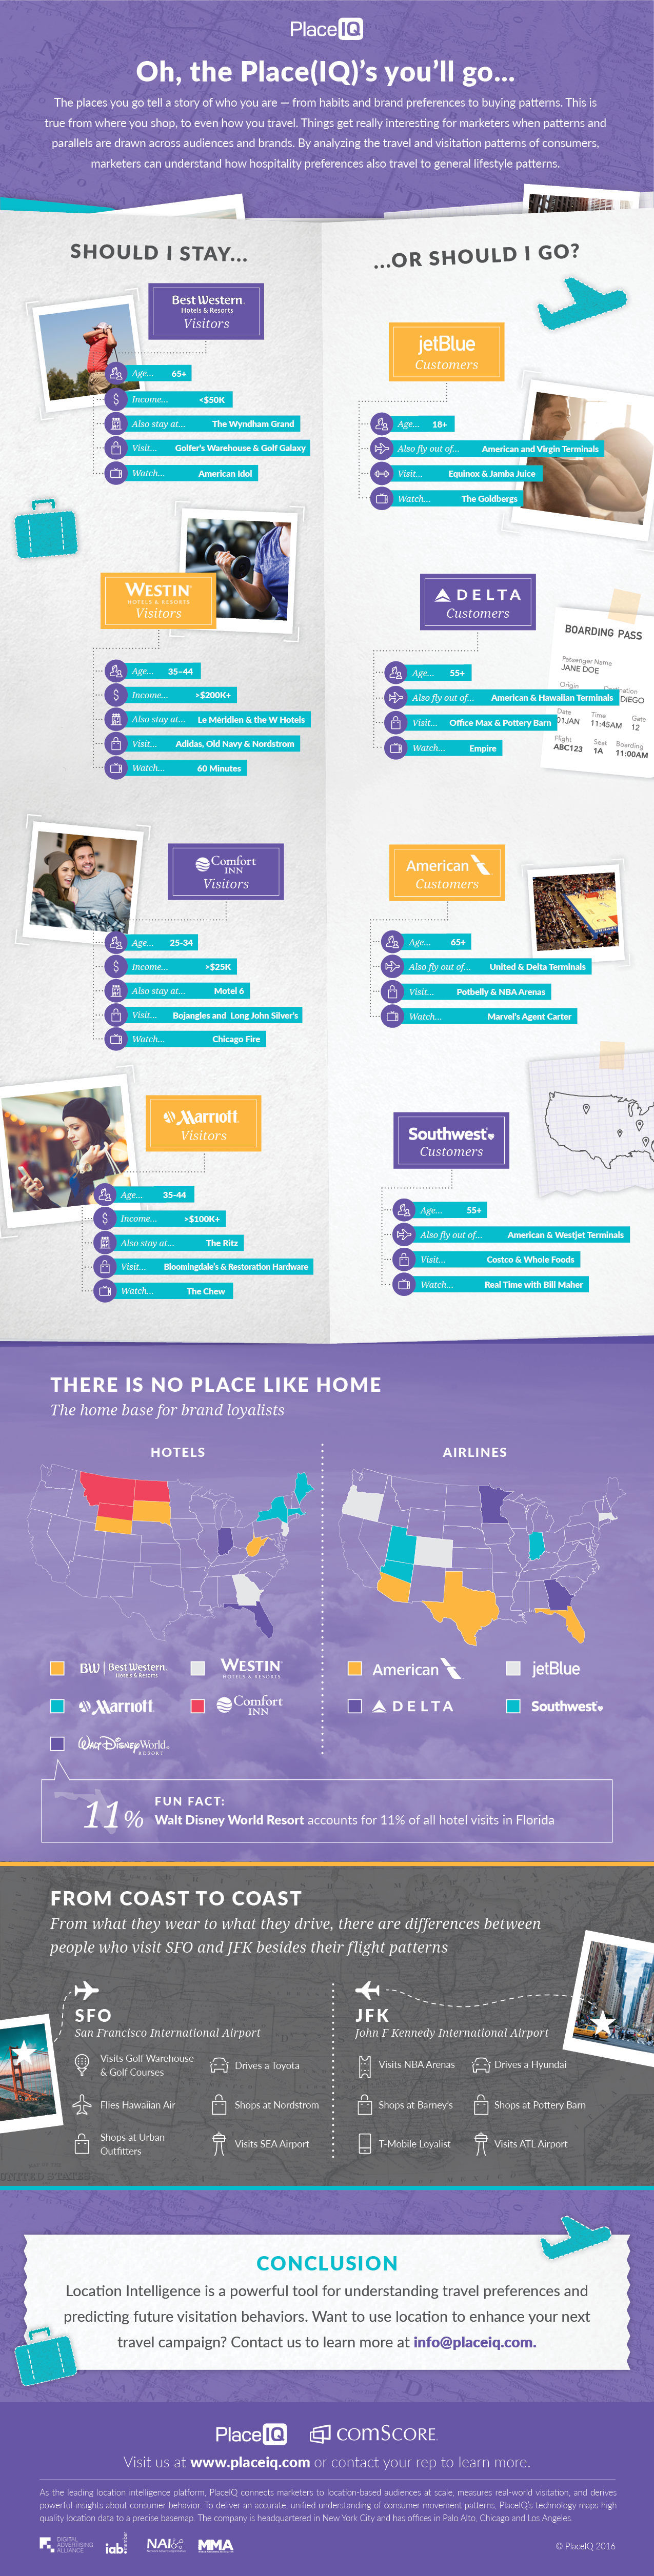 Travel as a Demographic indicator and Lifestyle [Infographic]